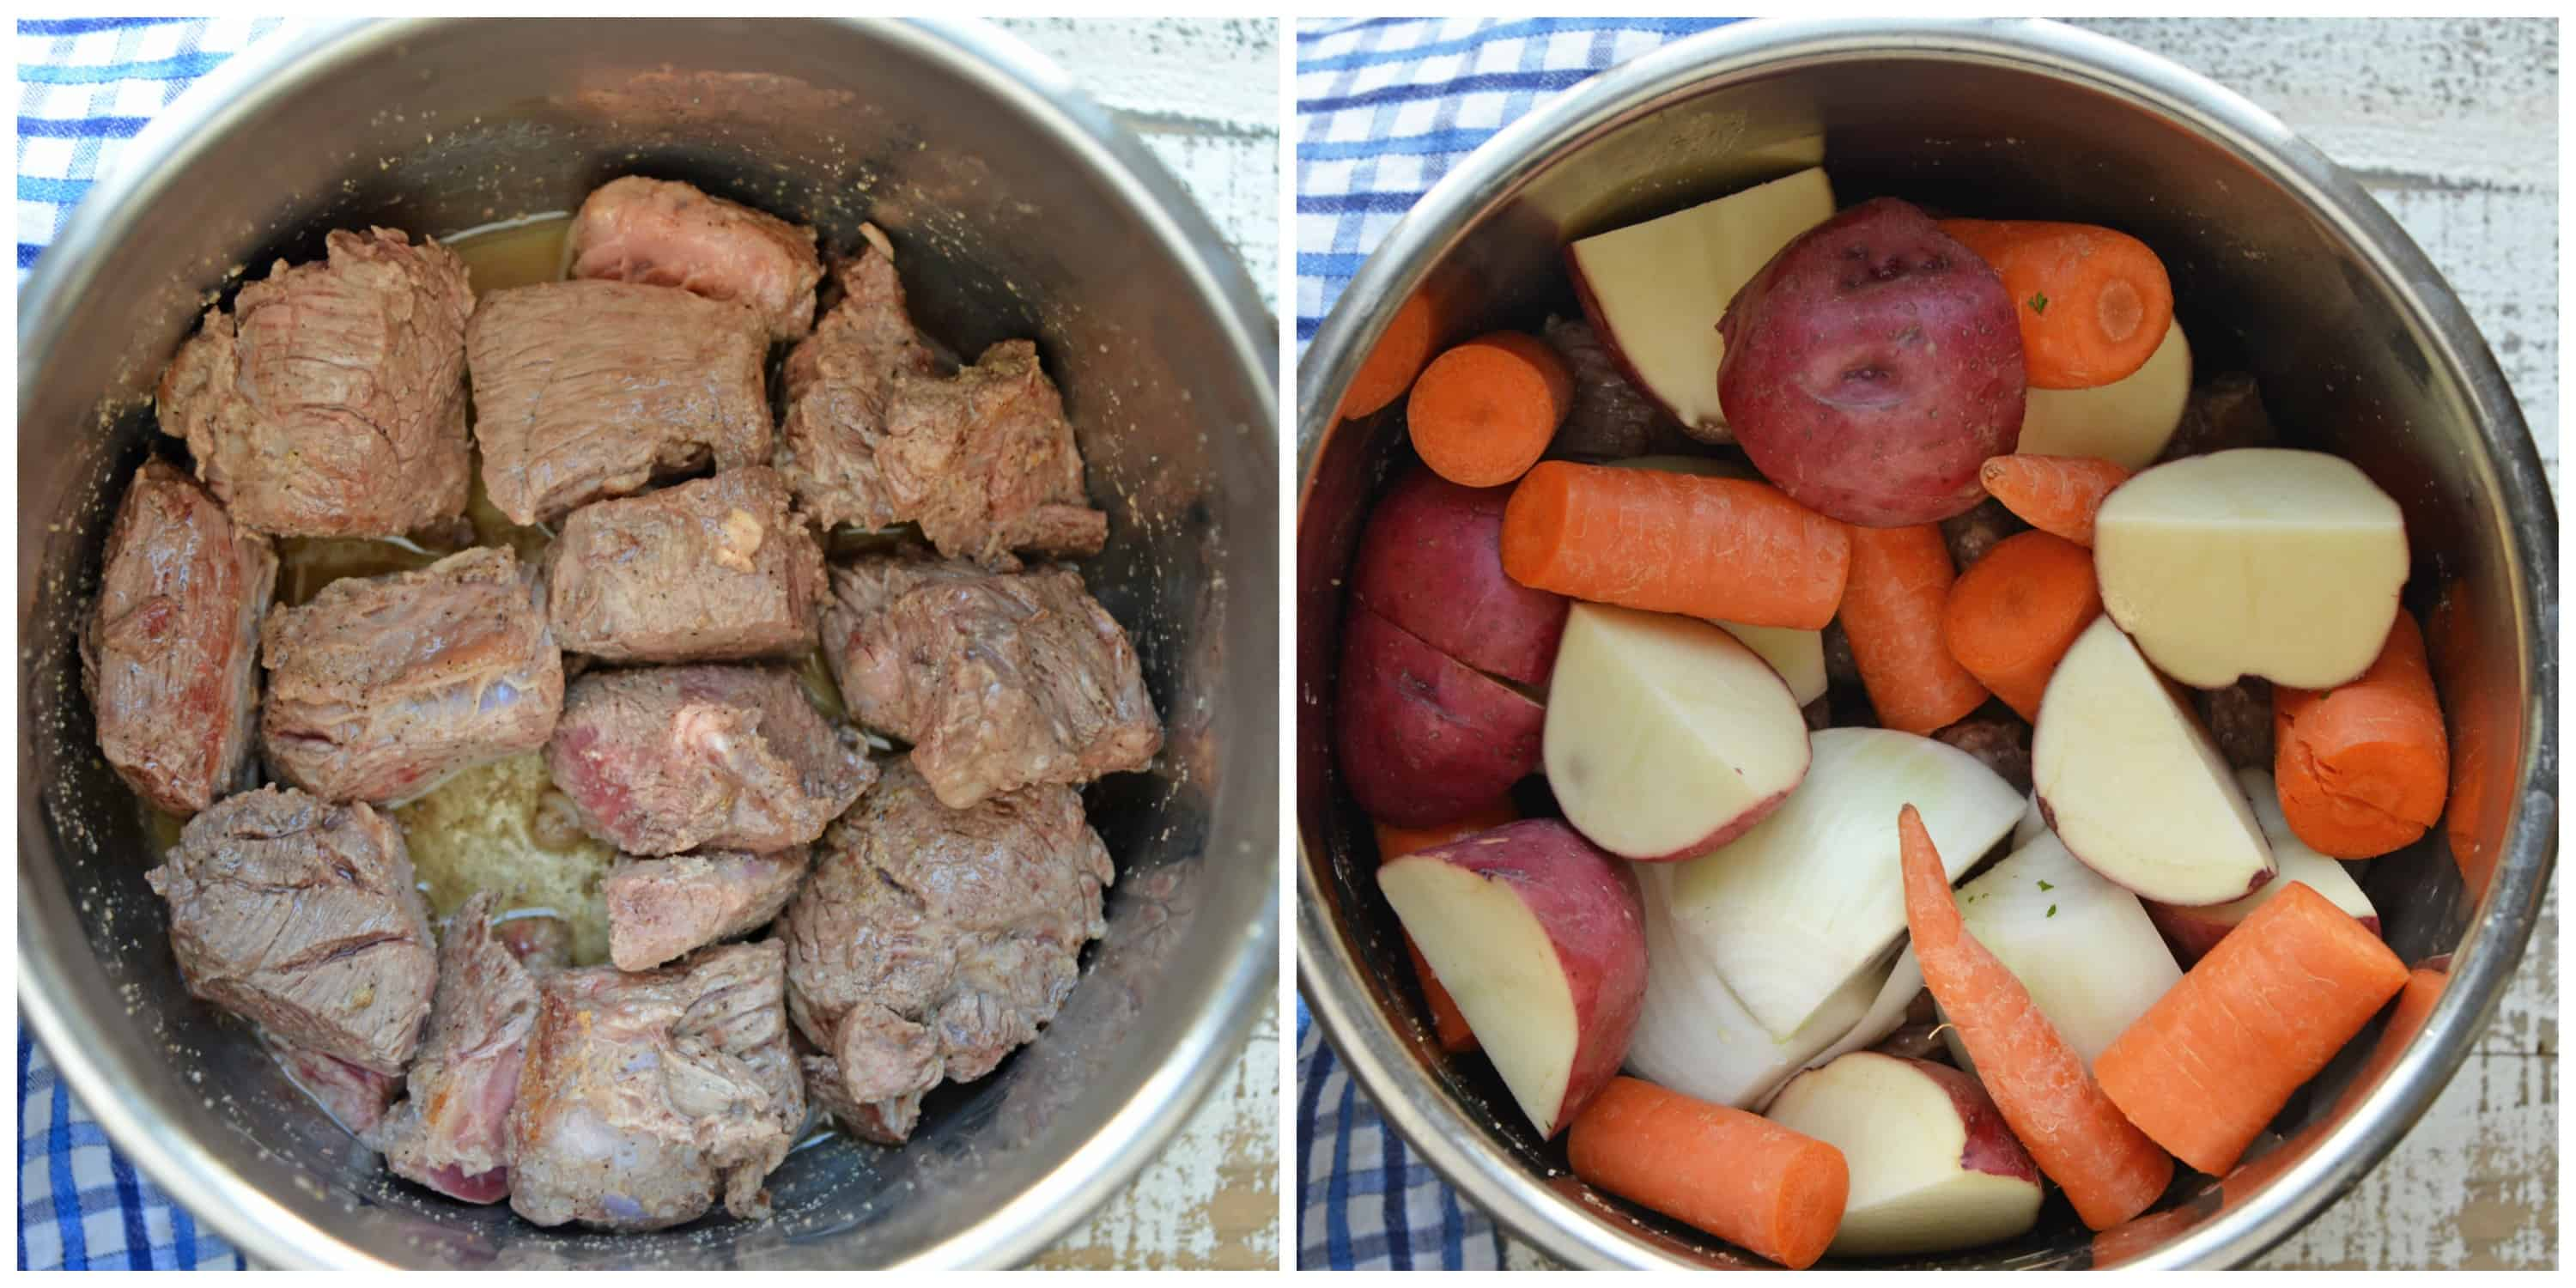 Meat and Vegetables in Pressure Cooker